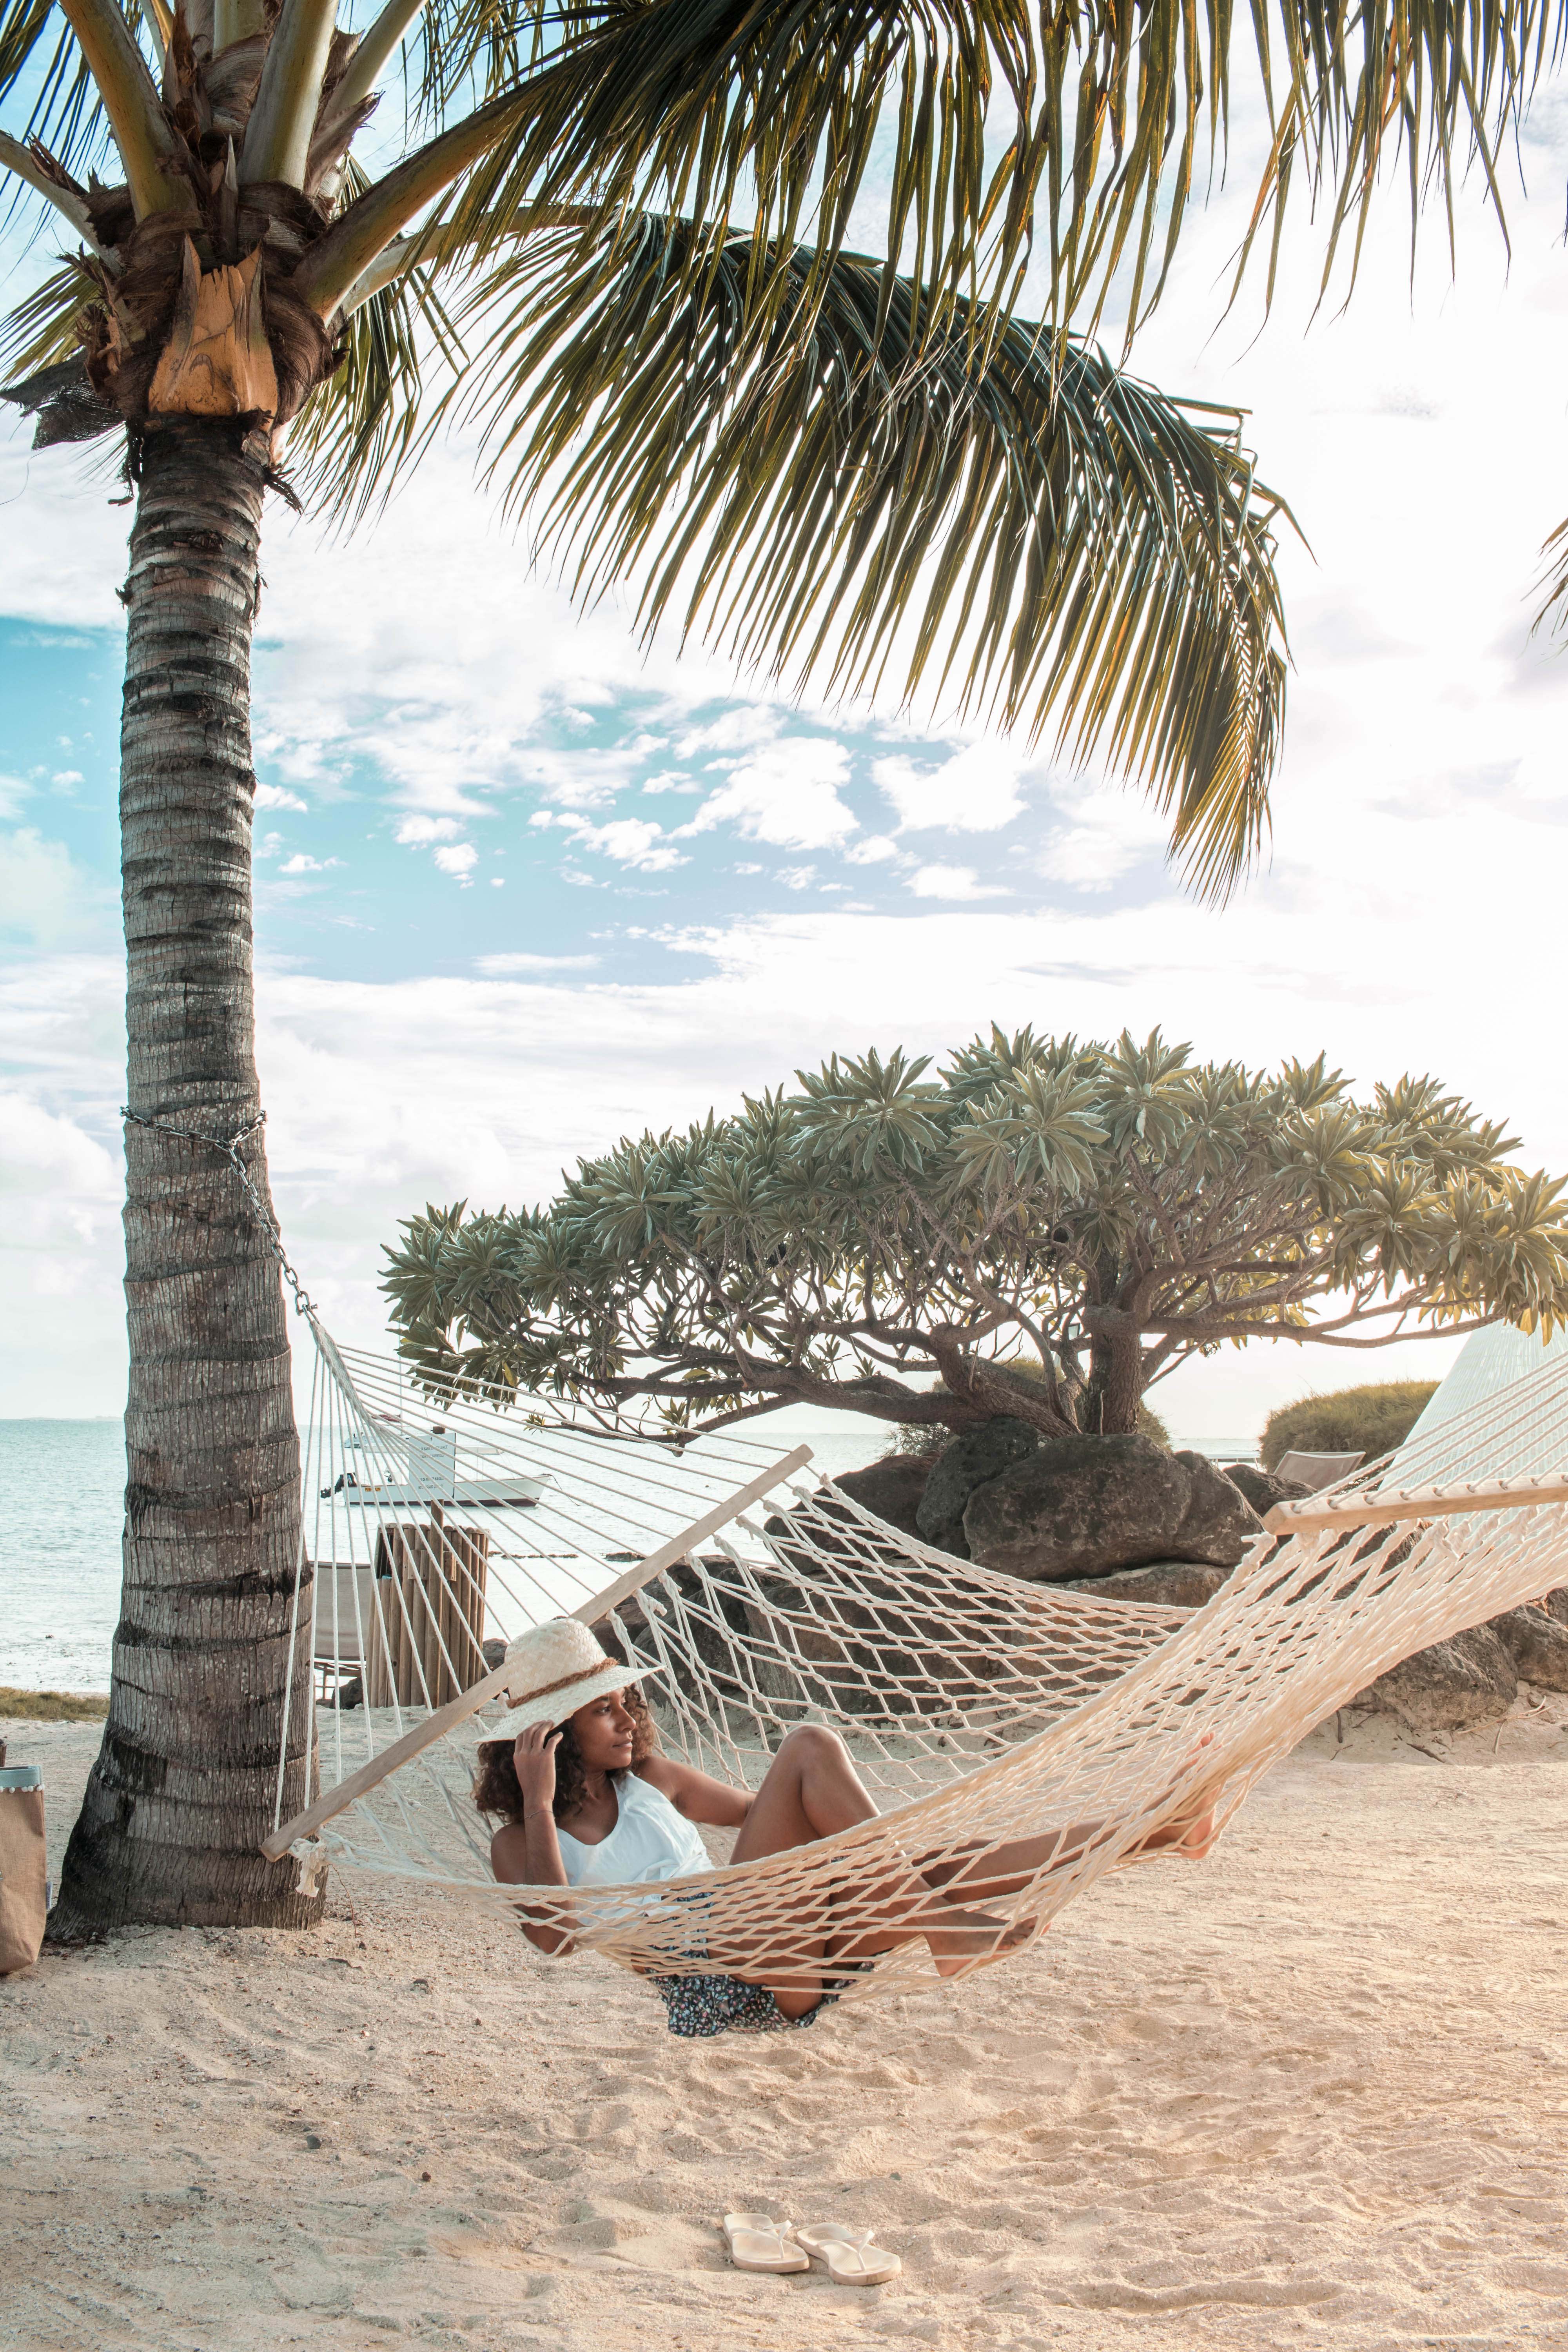 Ile Maurice : une semaine avec les Hôtels Attitude - itinéraire de 6-7 jours / Mauritius : things to do / one week itinerary with Attitude Hotels